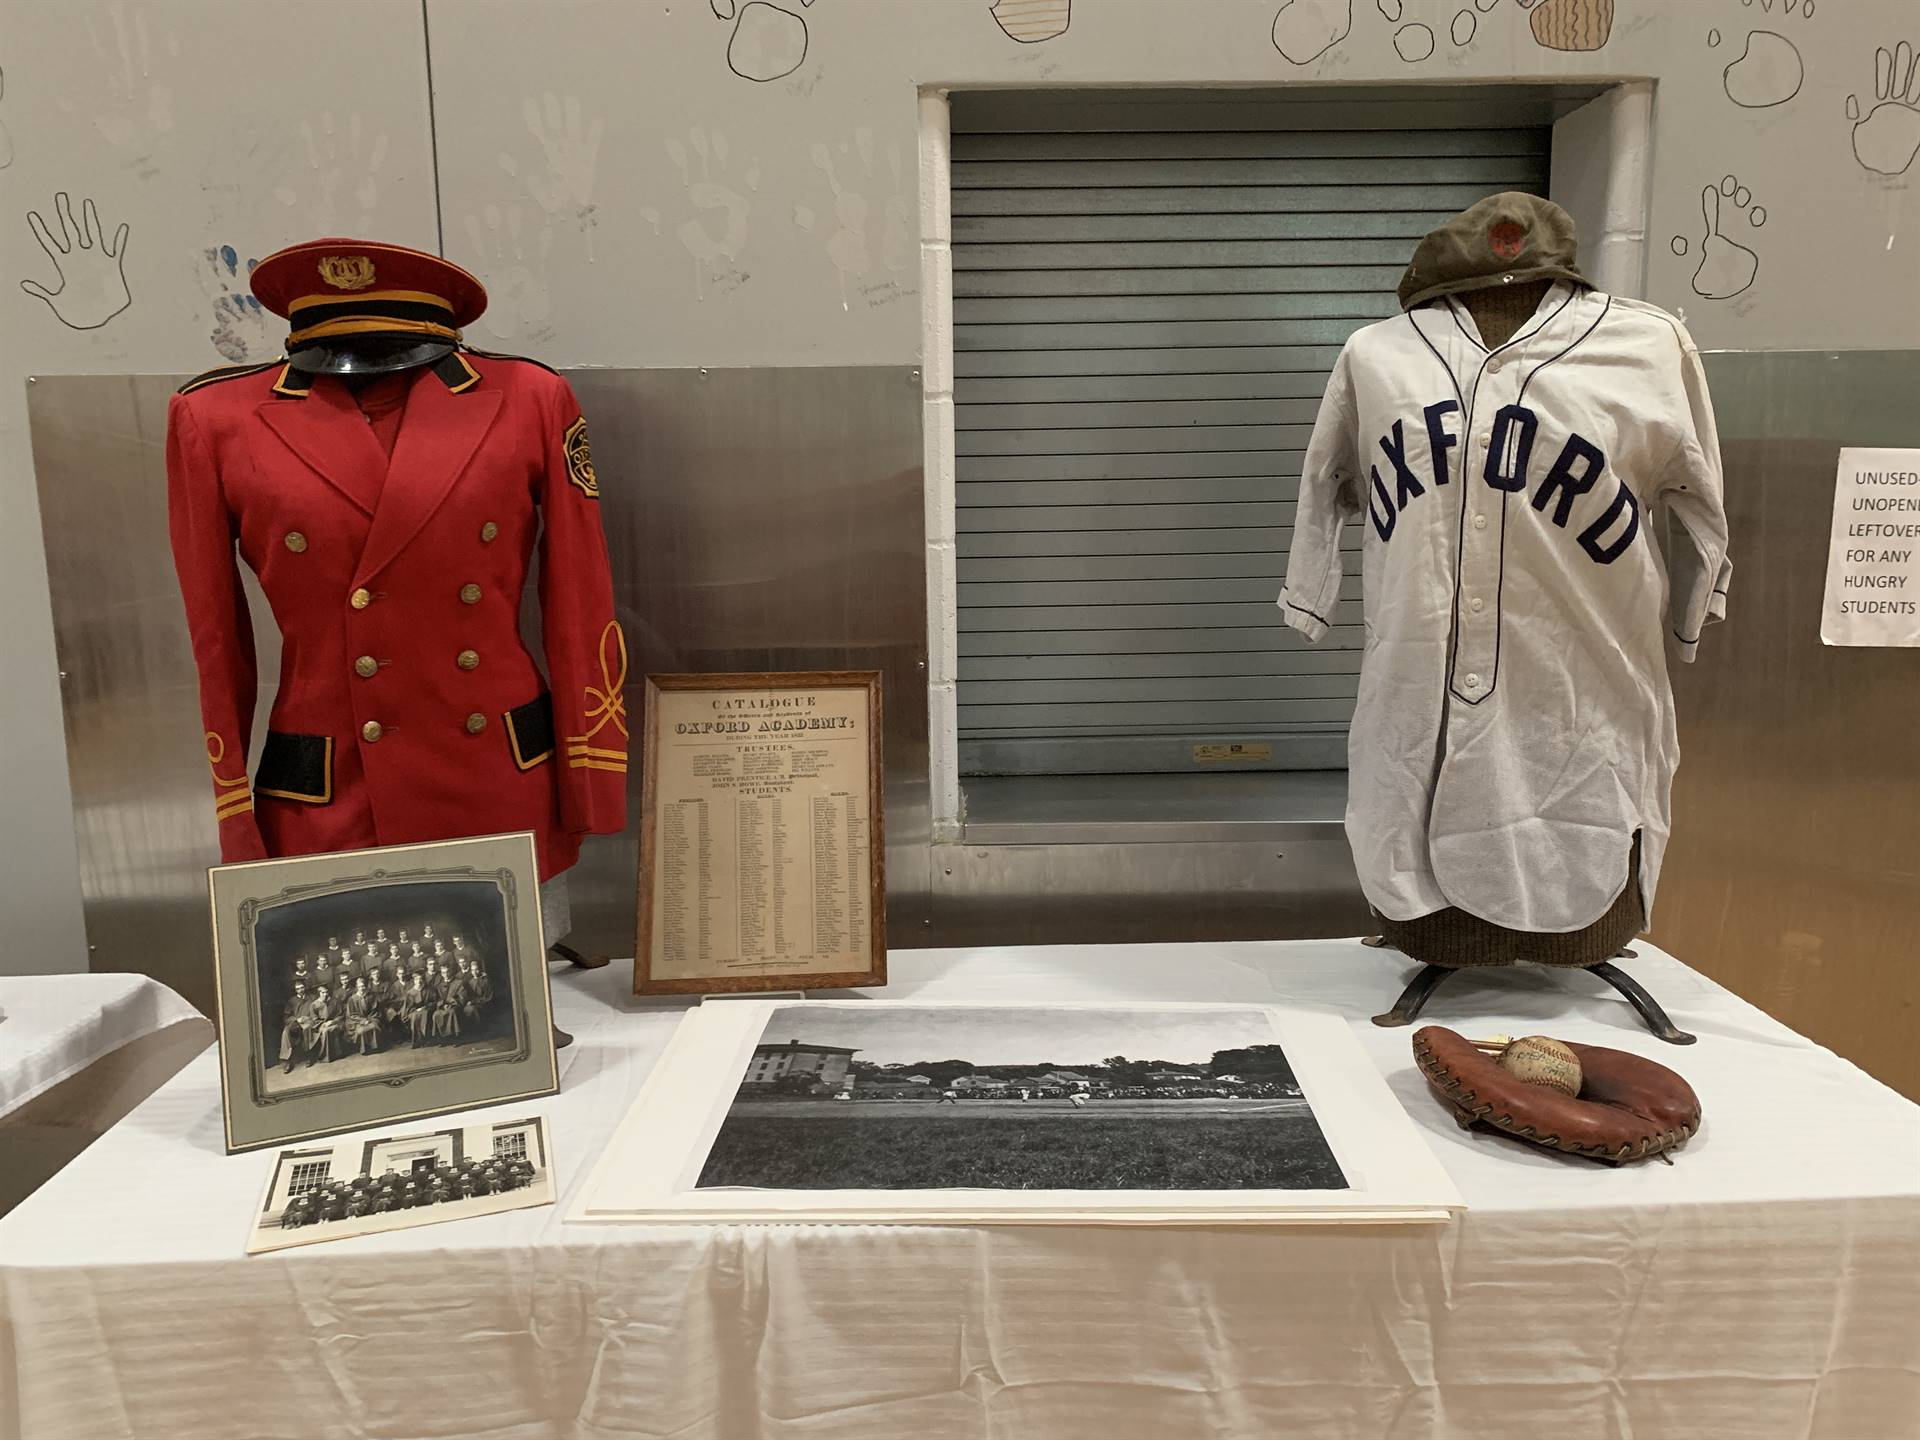 display table of old band and baseball uniforms